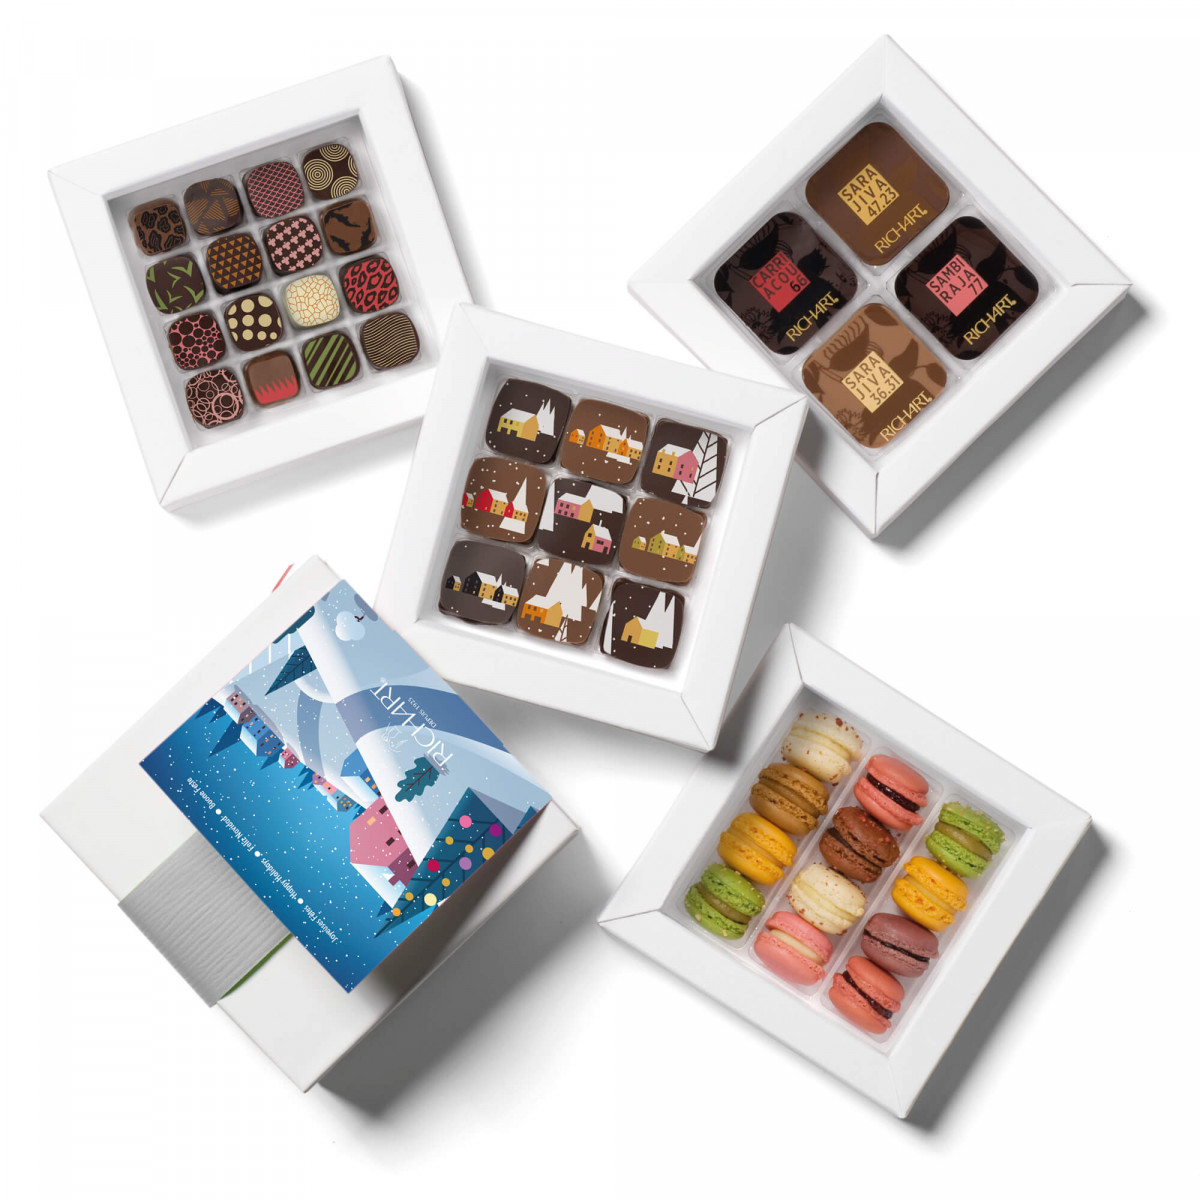 Sparkling Holiday, a gift box of filled chocolates from the new collection, solid chocolates and French mini-macarons.